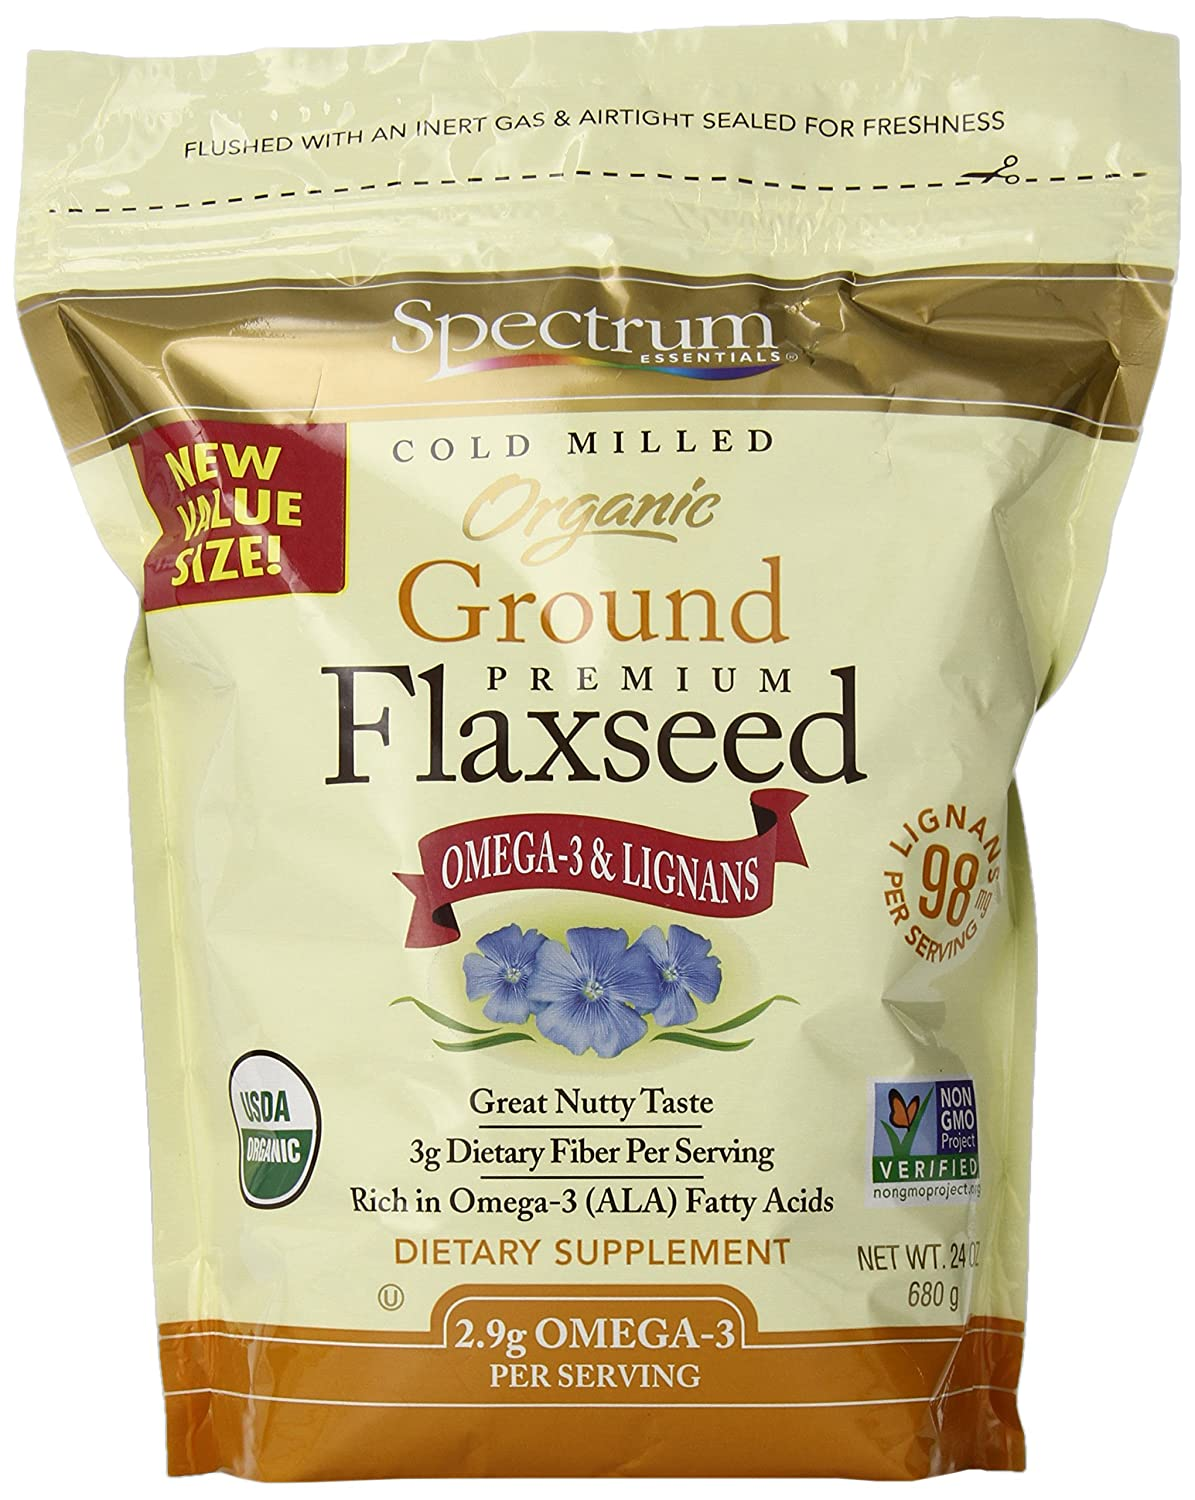 Bulk flax seed for crafts - Spectrum Essentials Organic Ground Flaxseed 24 Ounce